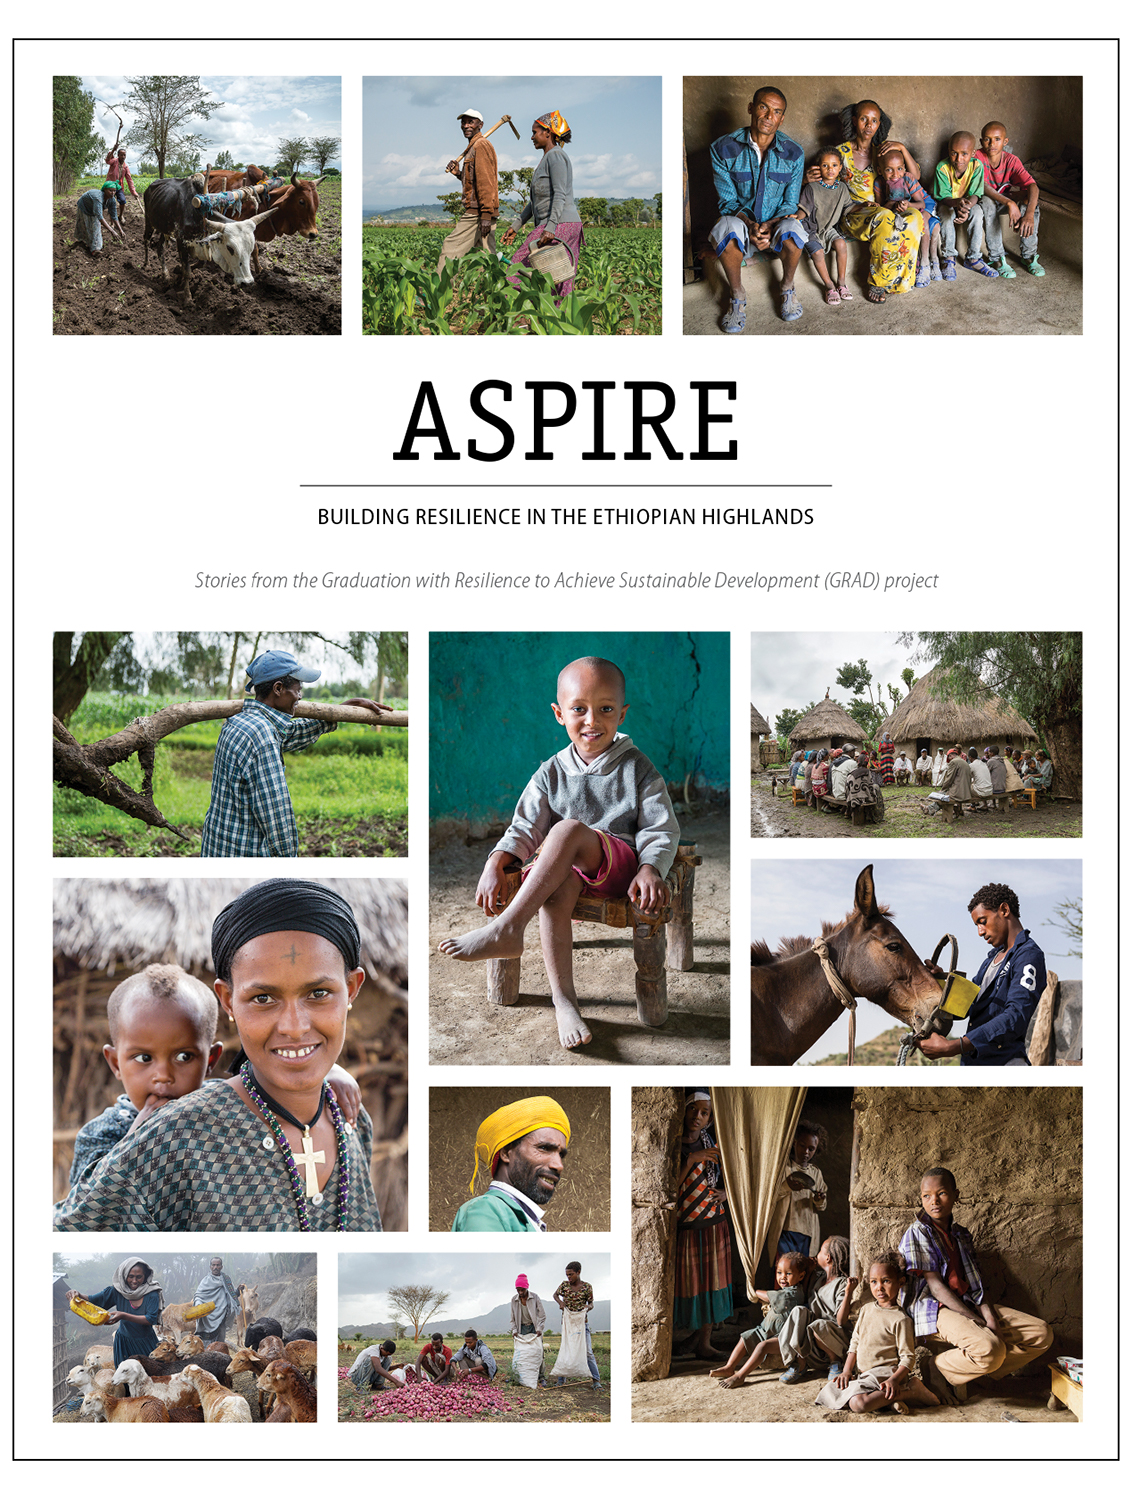 Aspire: Building Resilience in the Ethiopian Highlands